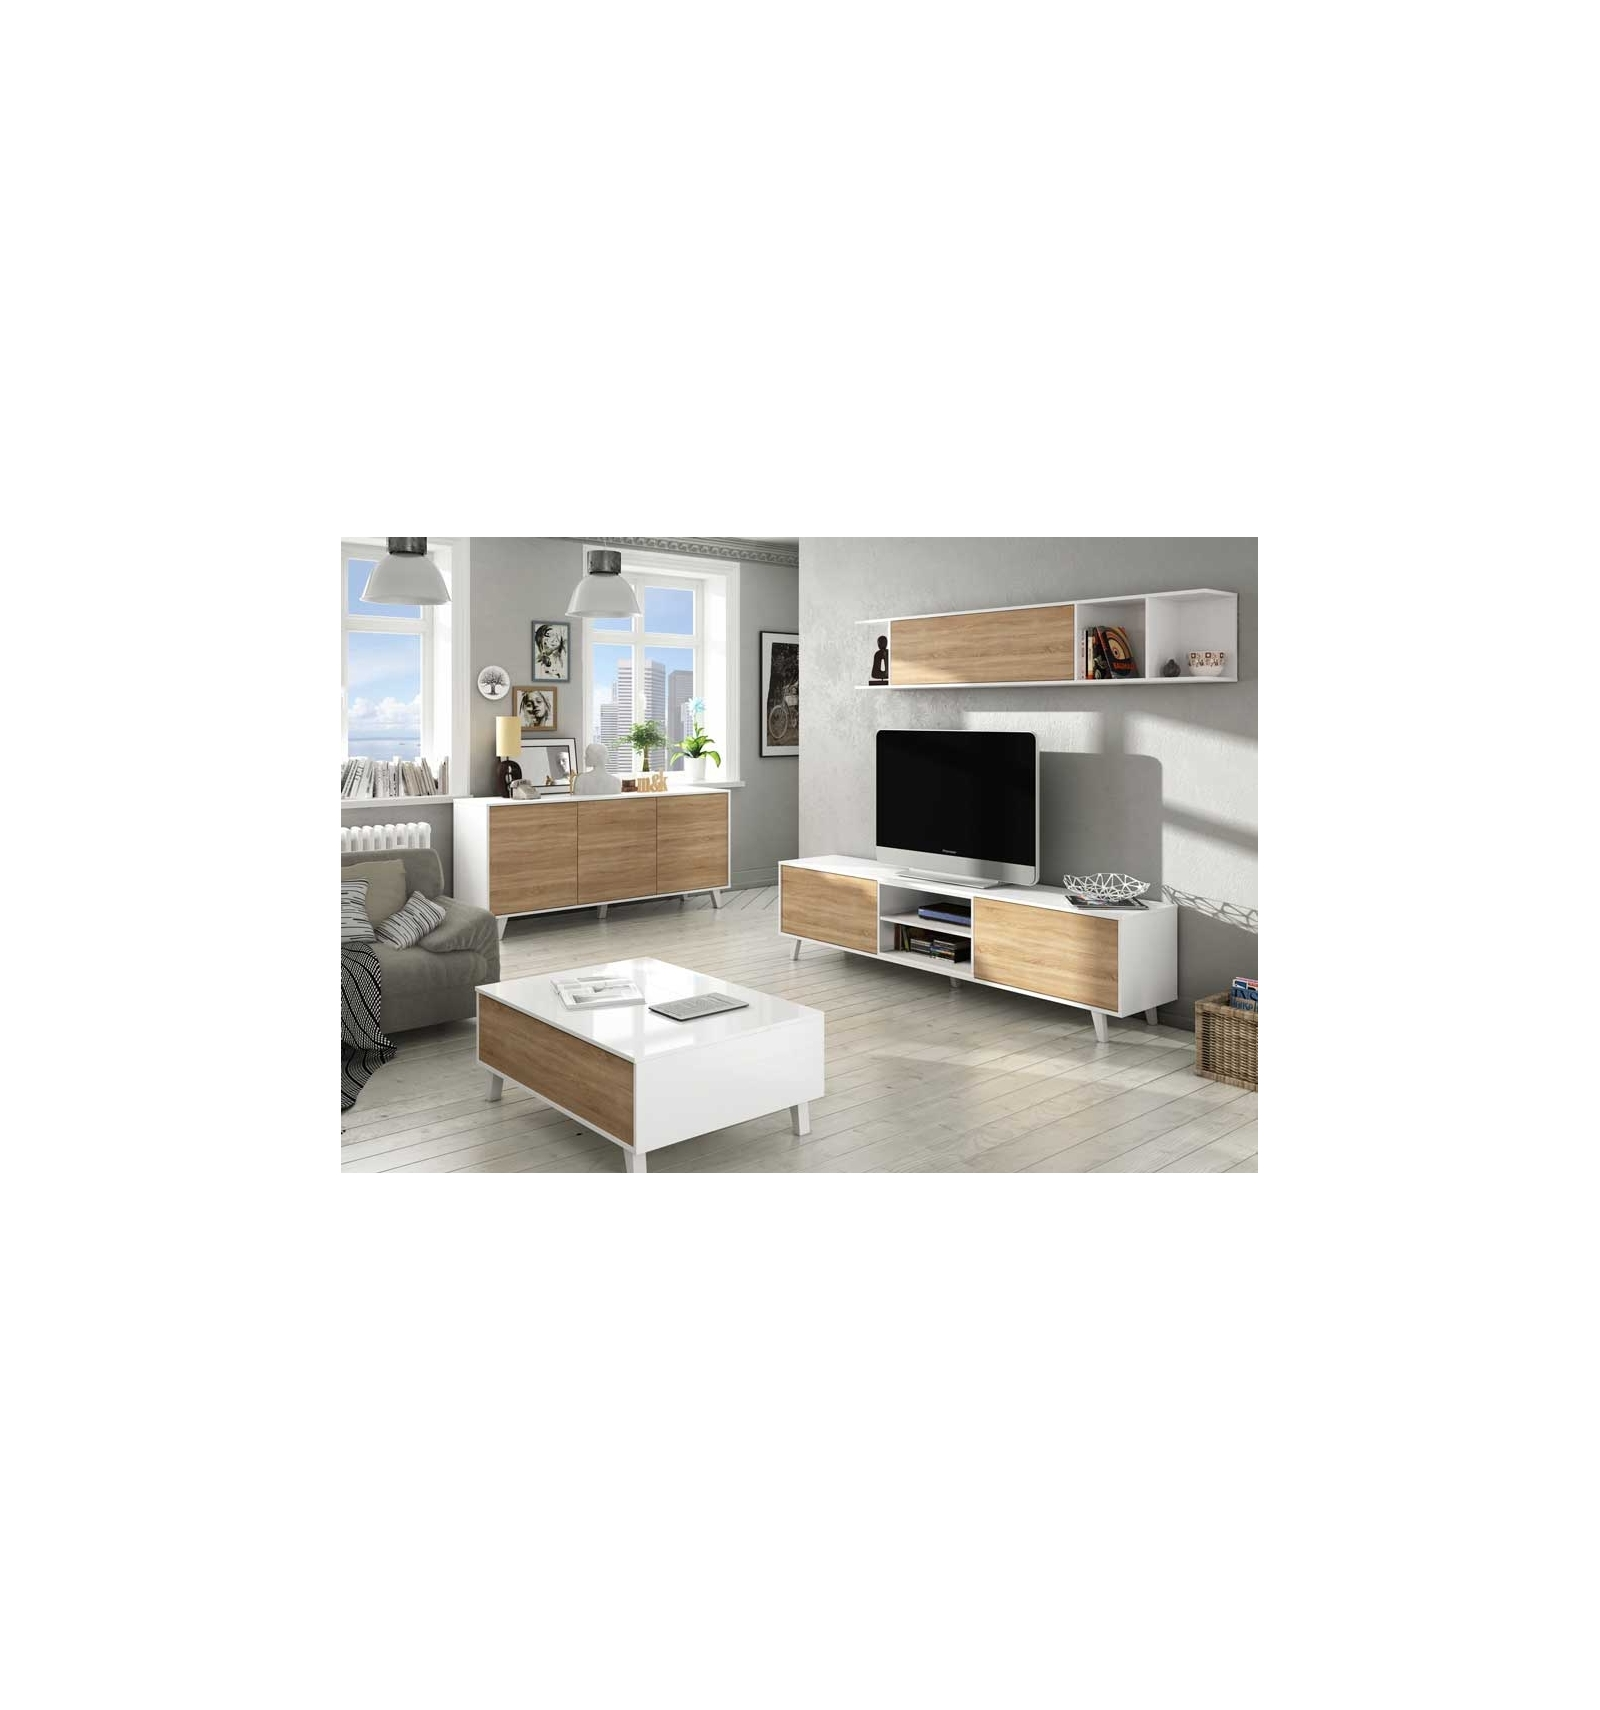 tv m bel im nordic style emori. Black Bedroom Furniture Sets. Home Design Ideas